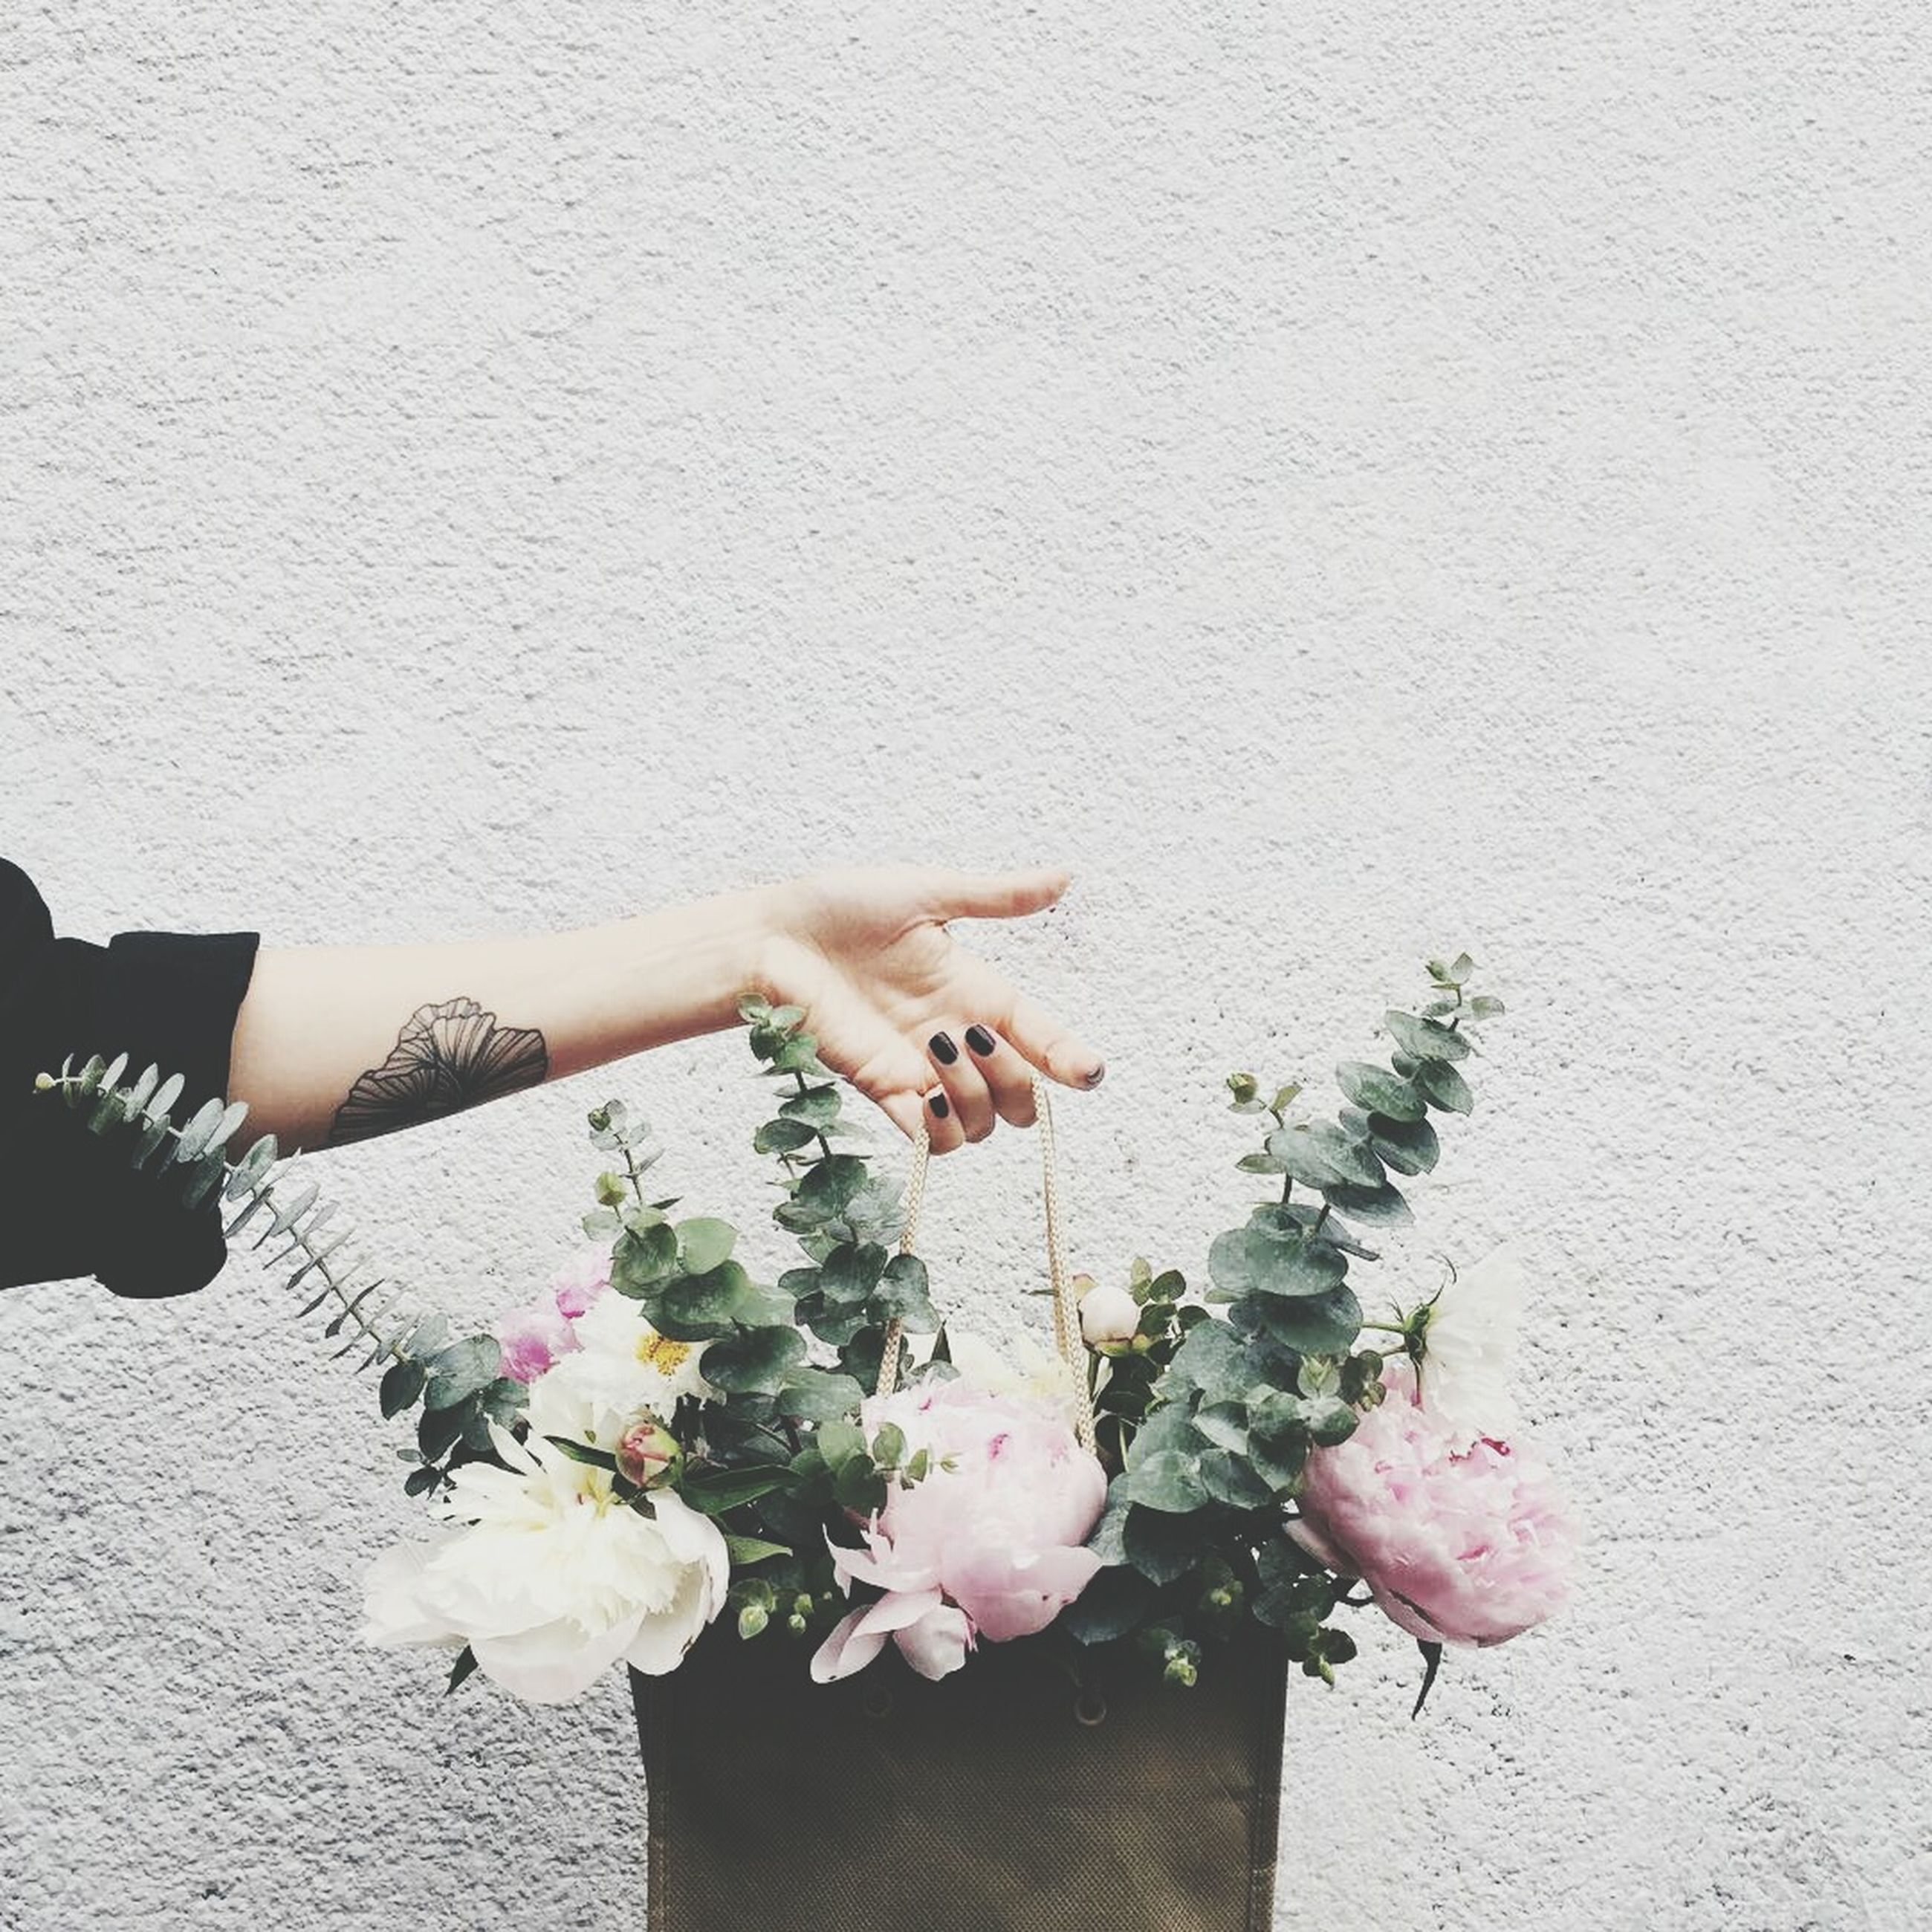 flower, bouquet, bunch of flowers, freshness, wall - building feature, flower arrangement, fragility, nature, person, holding, beauty in nature, petal, vacations, pink color, blossom, flower head, collection